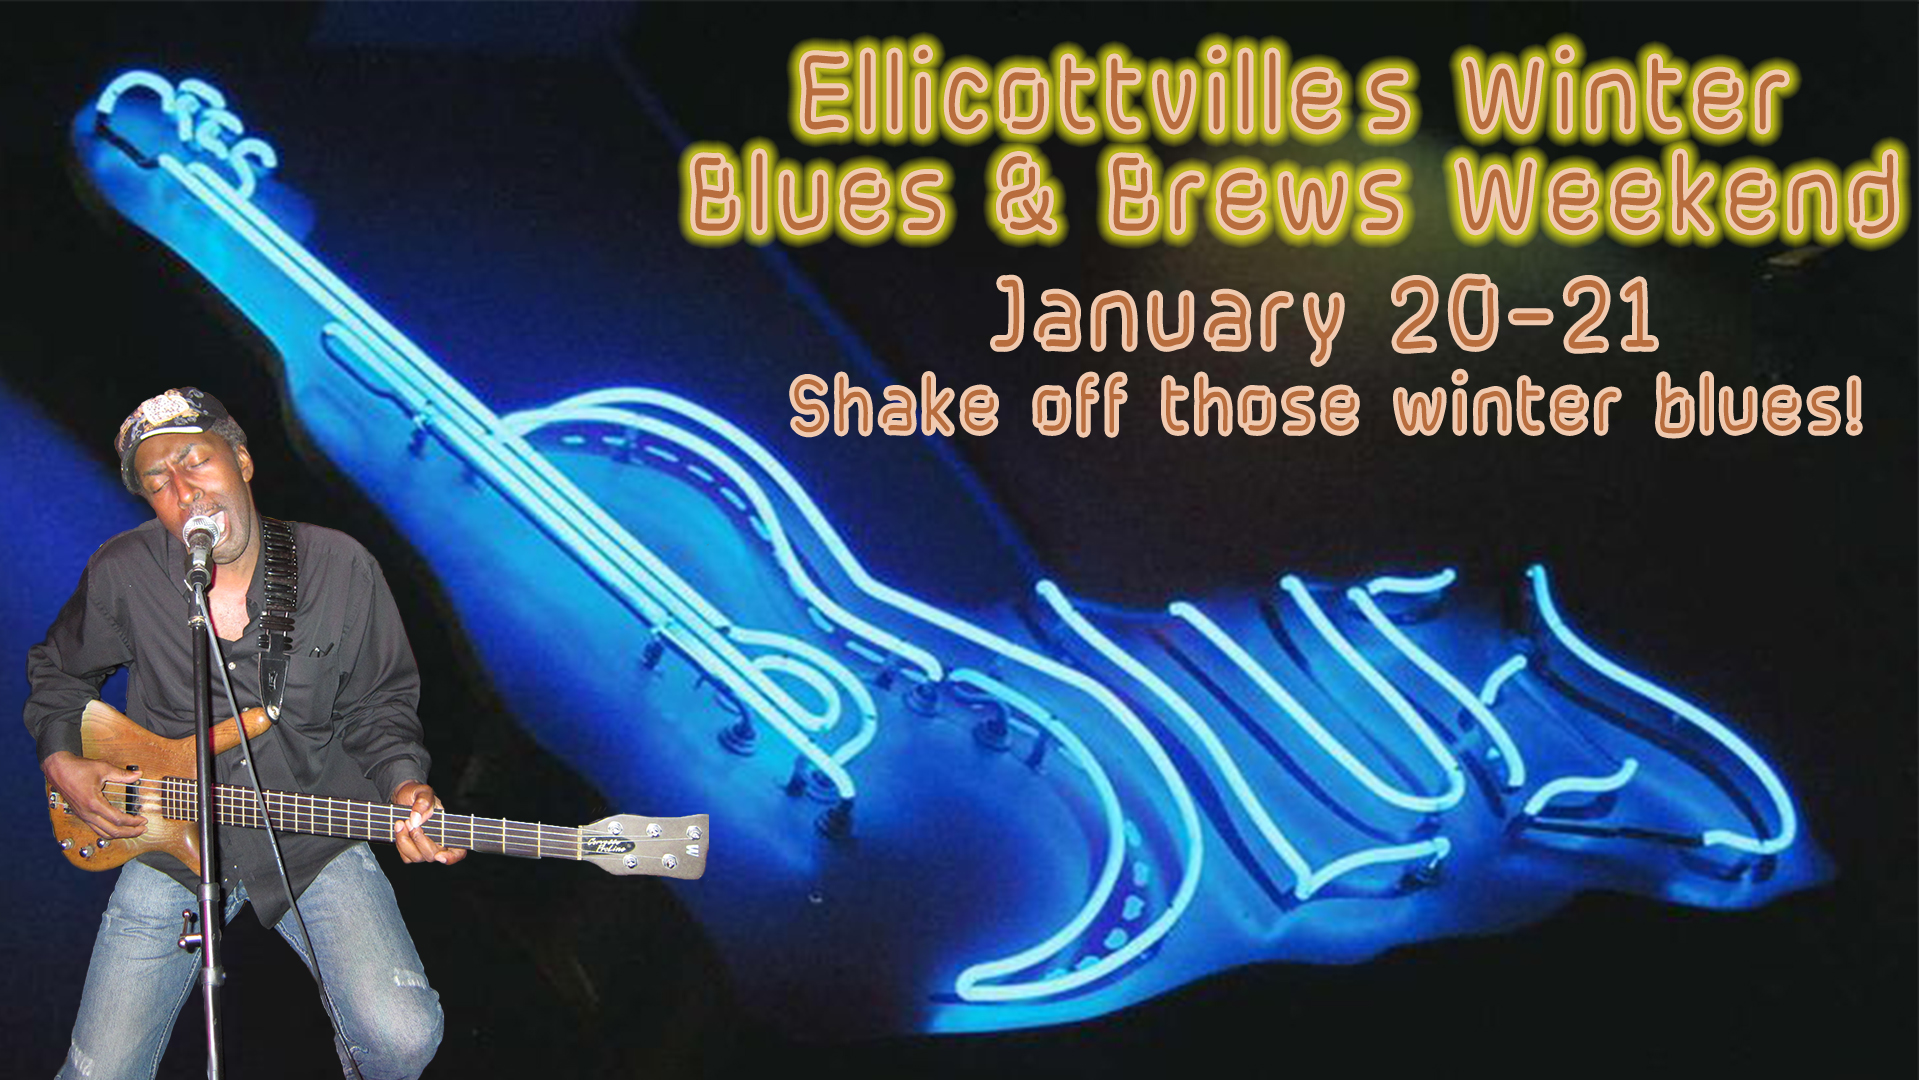 Ellicottville Winter Blues Weekend